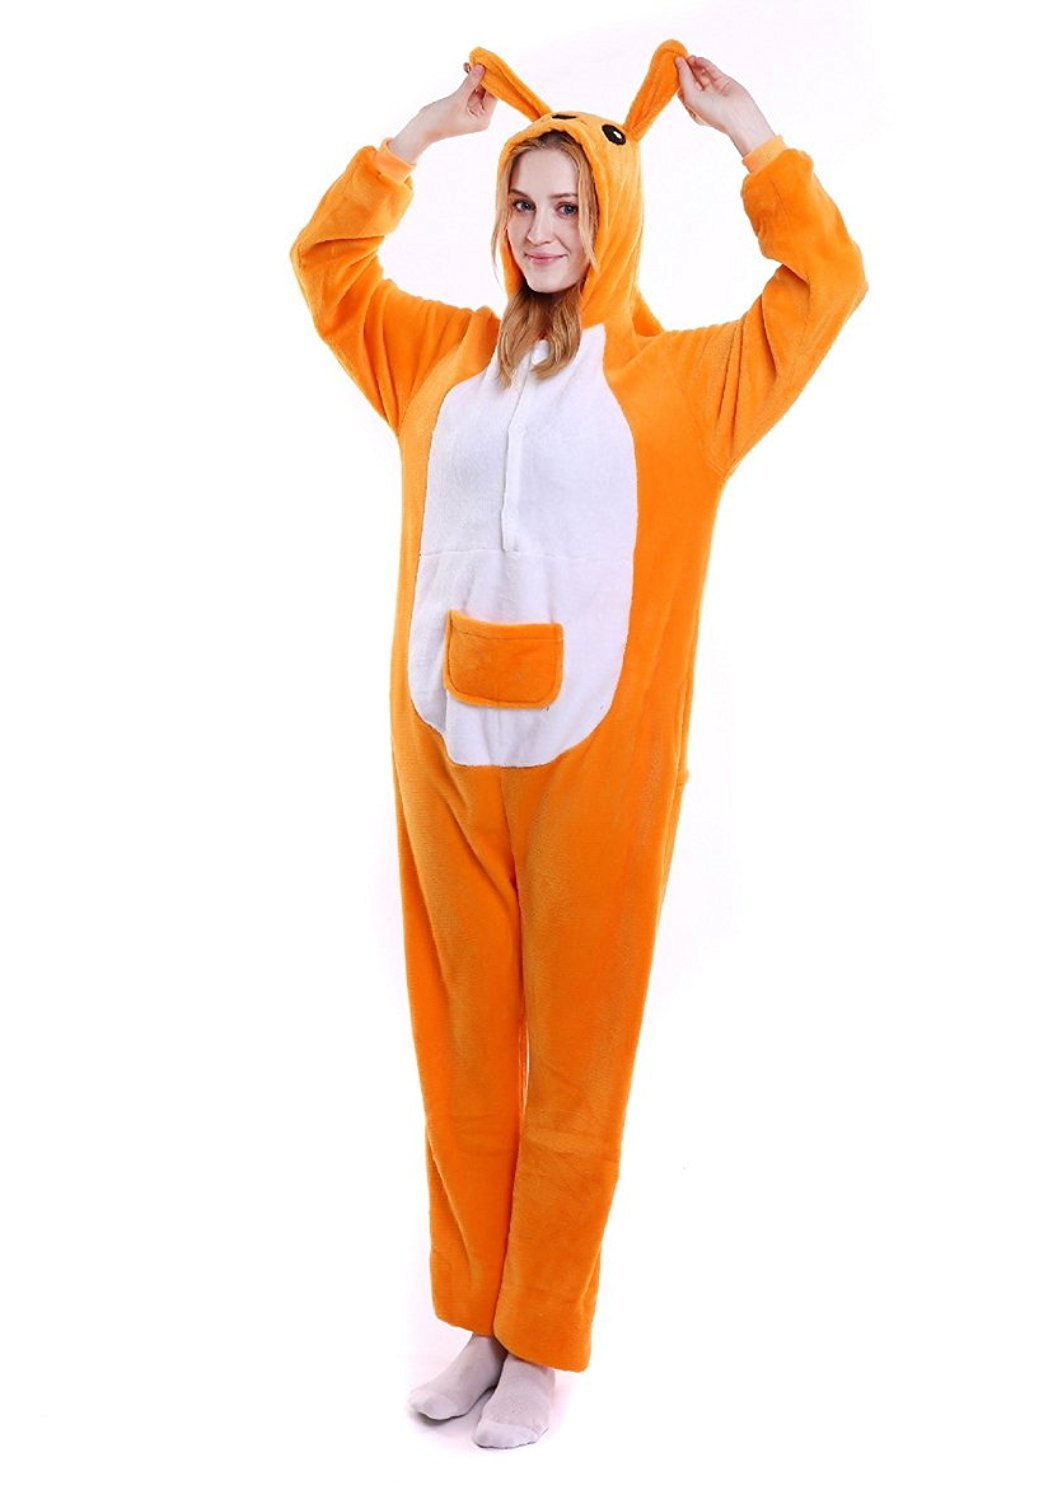 ABING® Halloween Pajamas OnePiece Onesie Cosplay Costumes Kigurumi Animal XP_ADULT